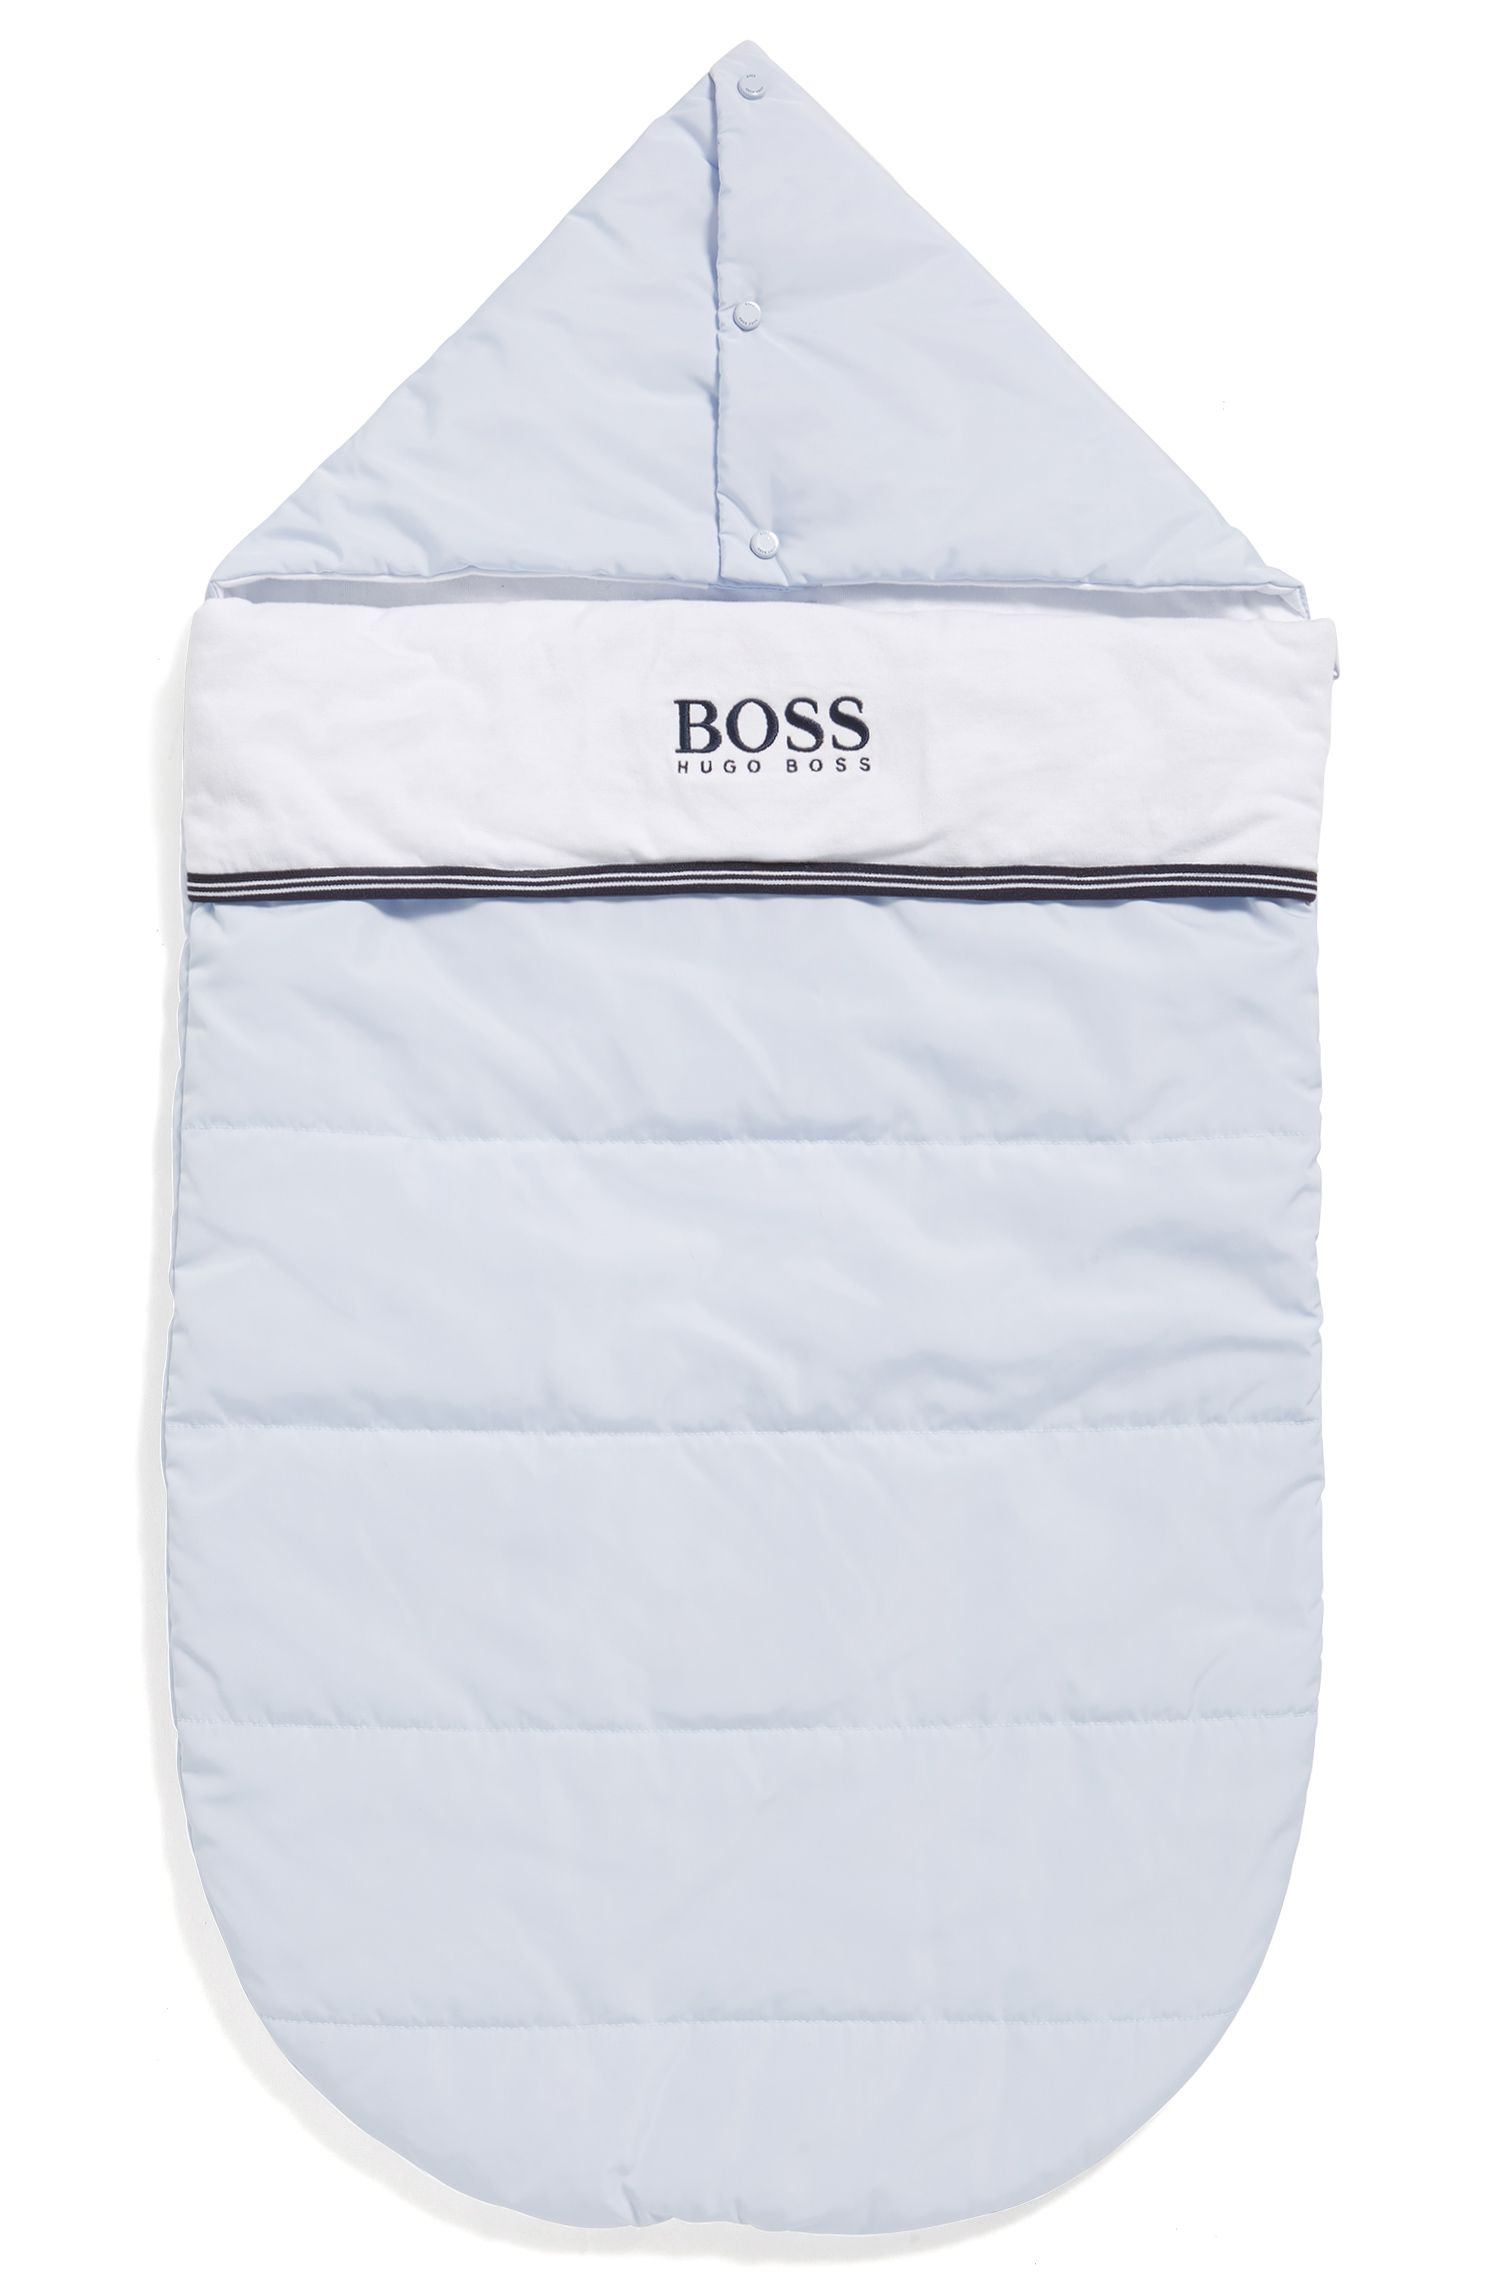 Baby quilted sleeping bag with jersey lining